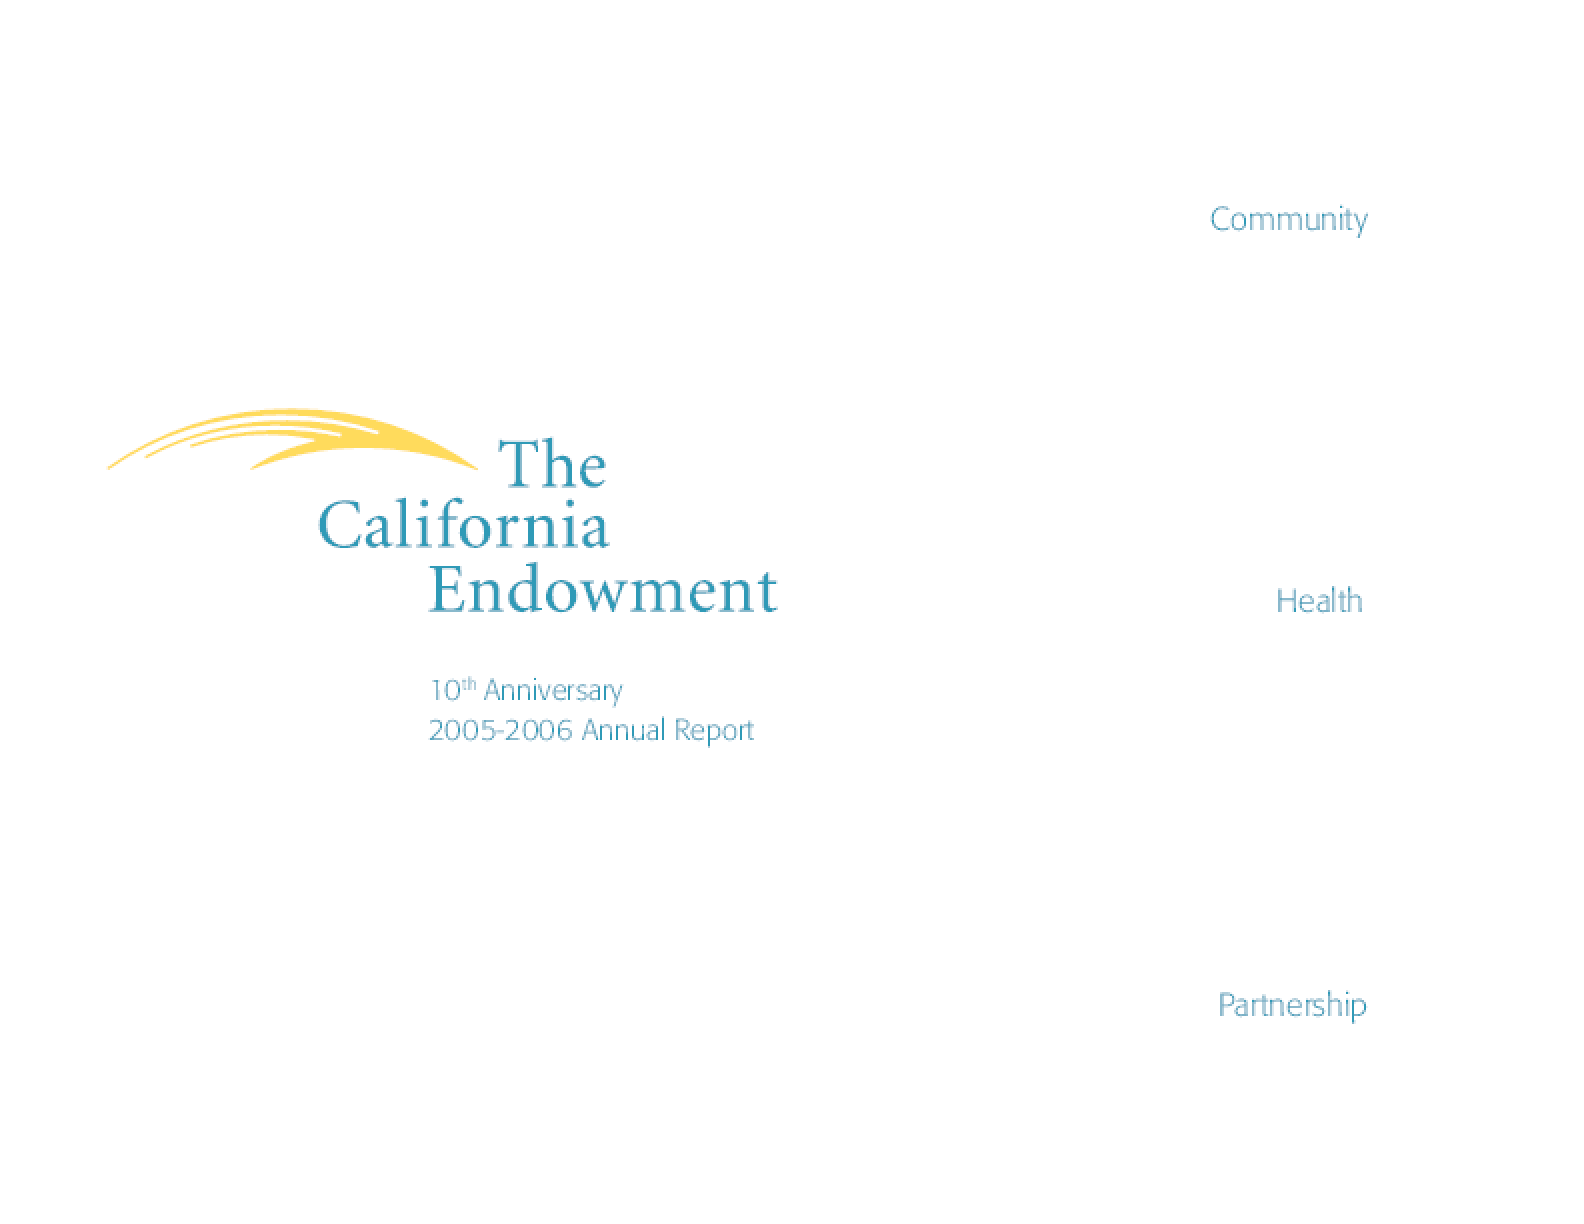 California Endowment - 2005-2006 Annual Report: Community. Health. Partnership